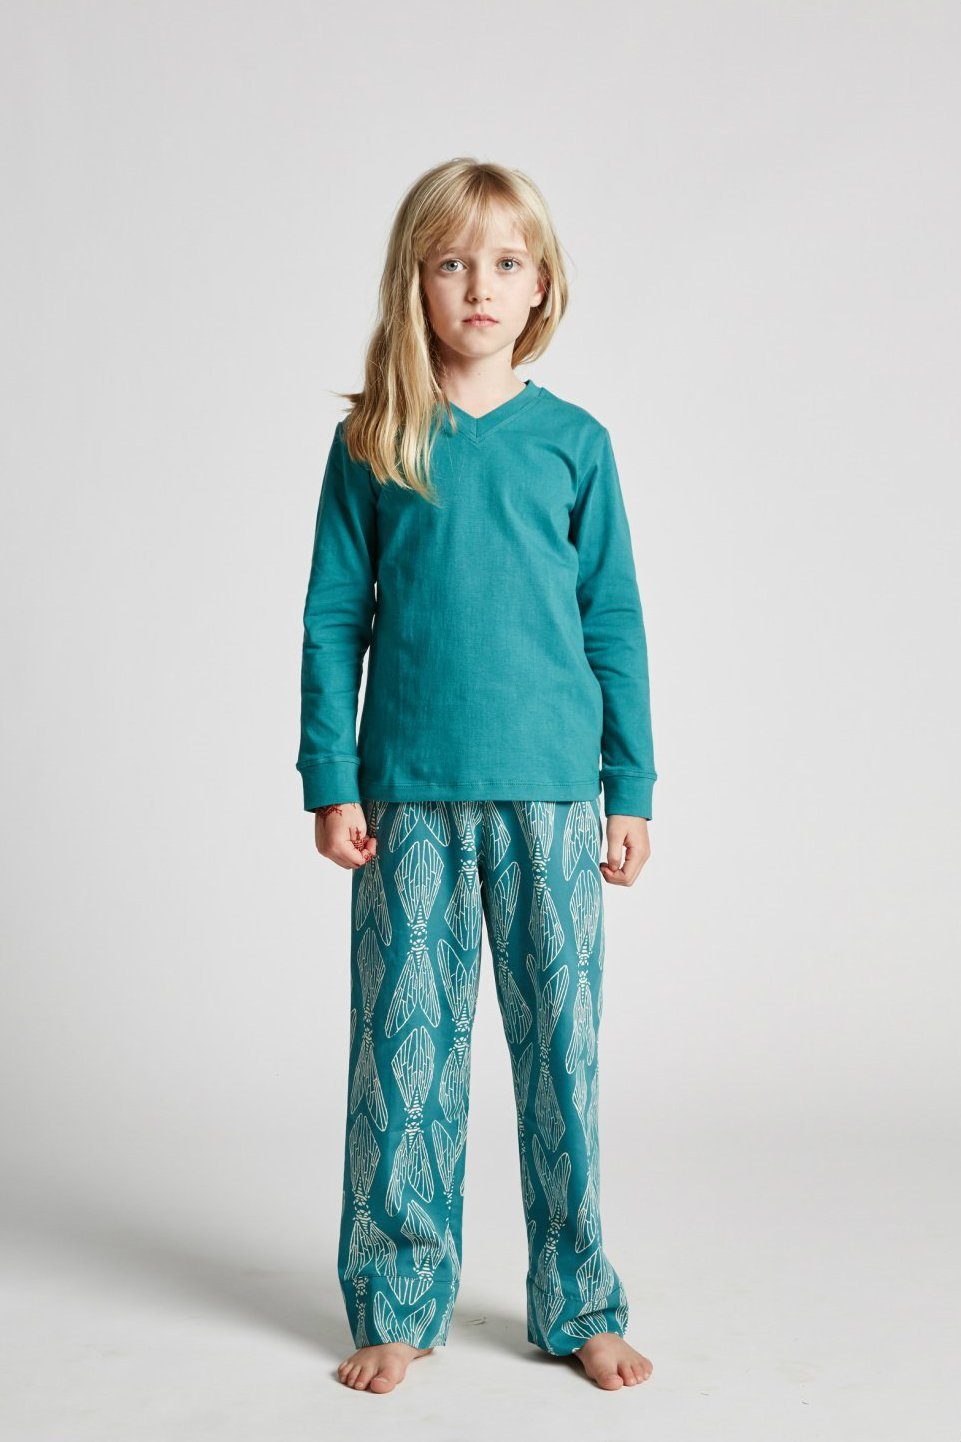 Kids girls boys unisex ethical organic cotton sleepwear